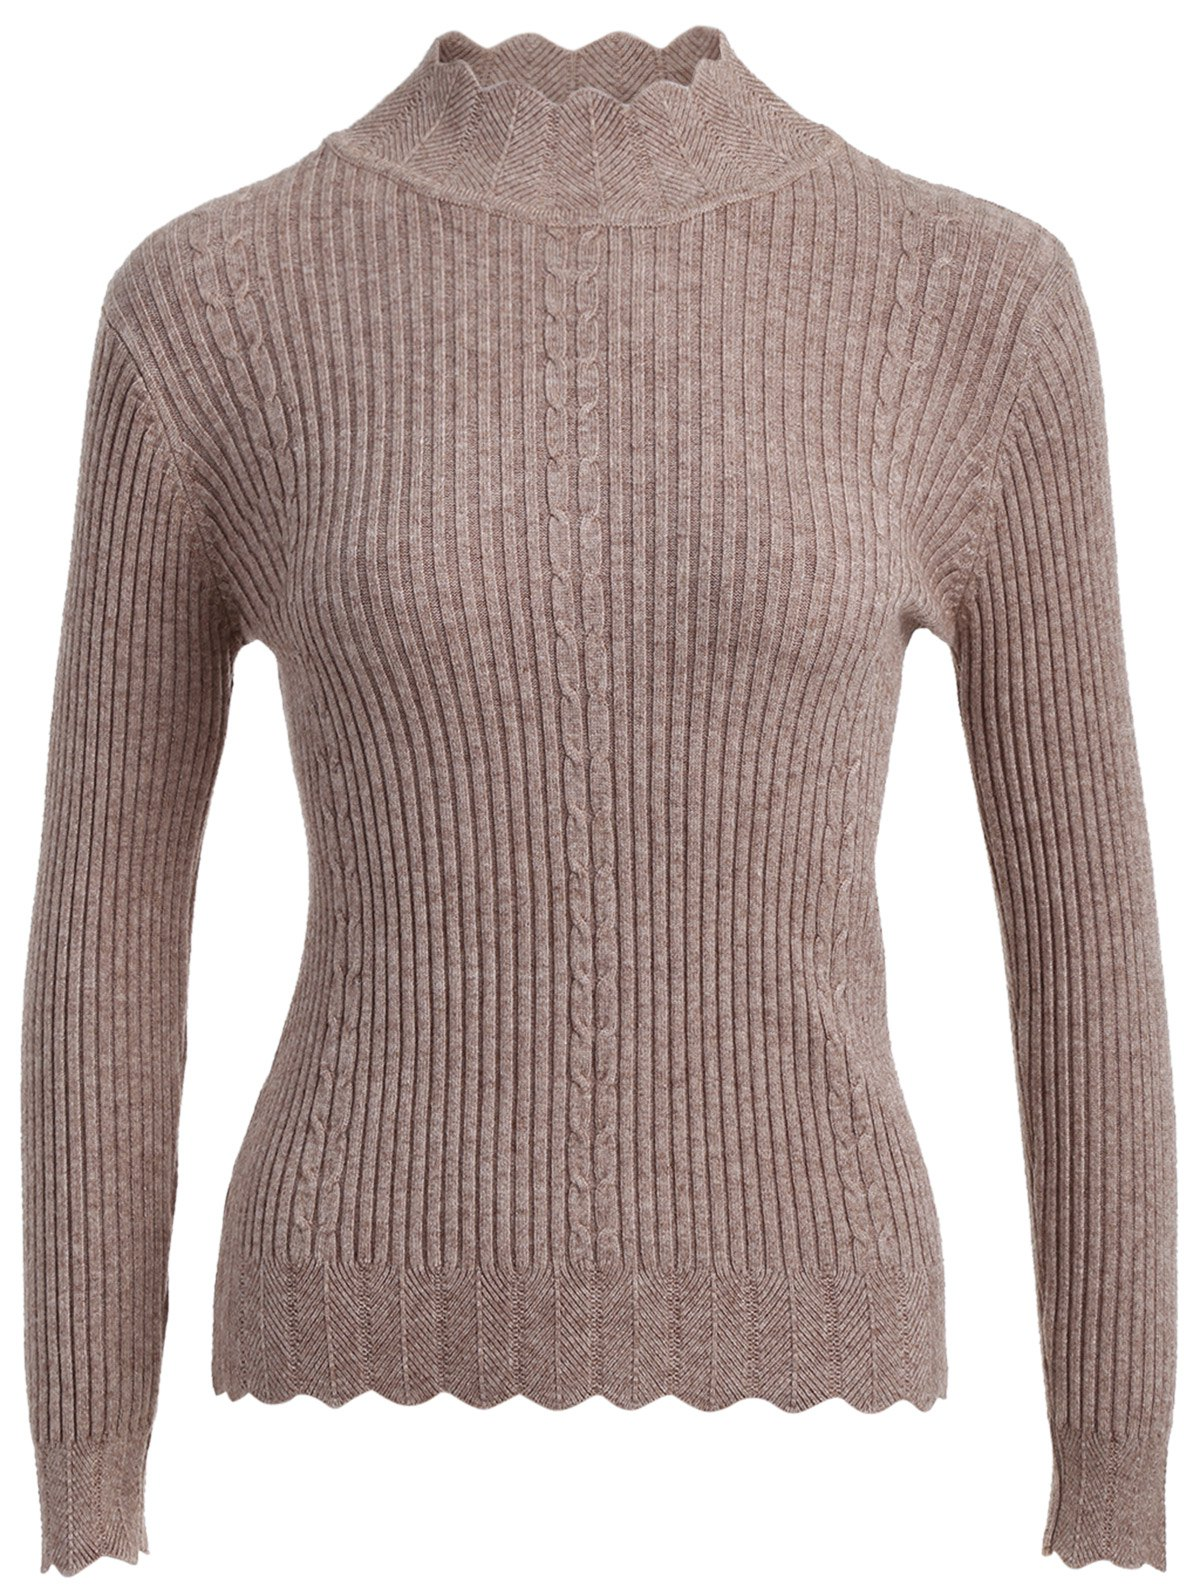 Shops Drop Shoulder Scalloped Ribbed Sweater